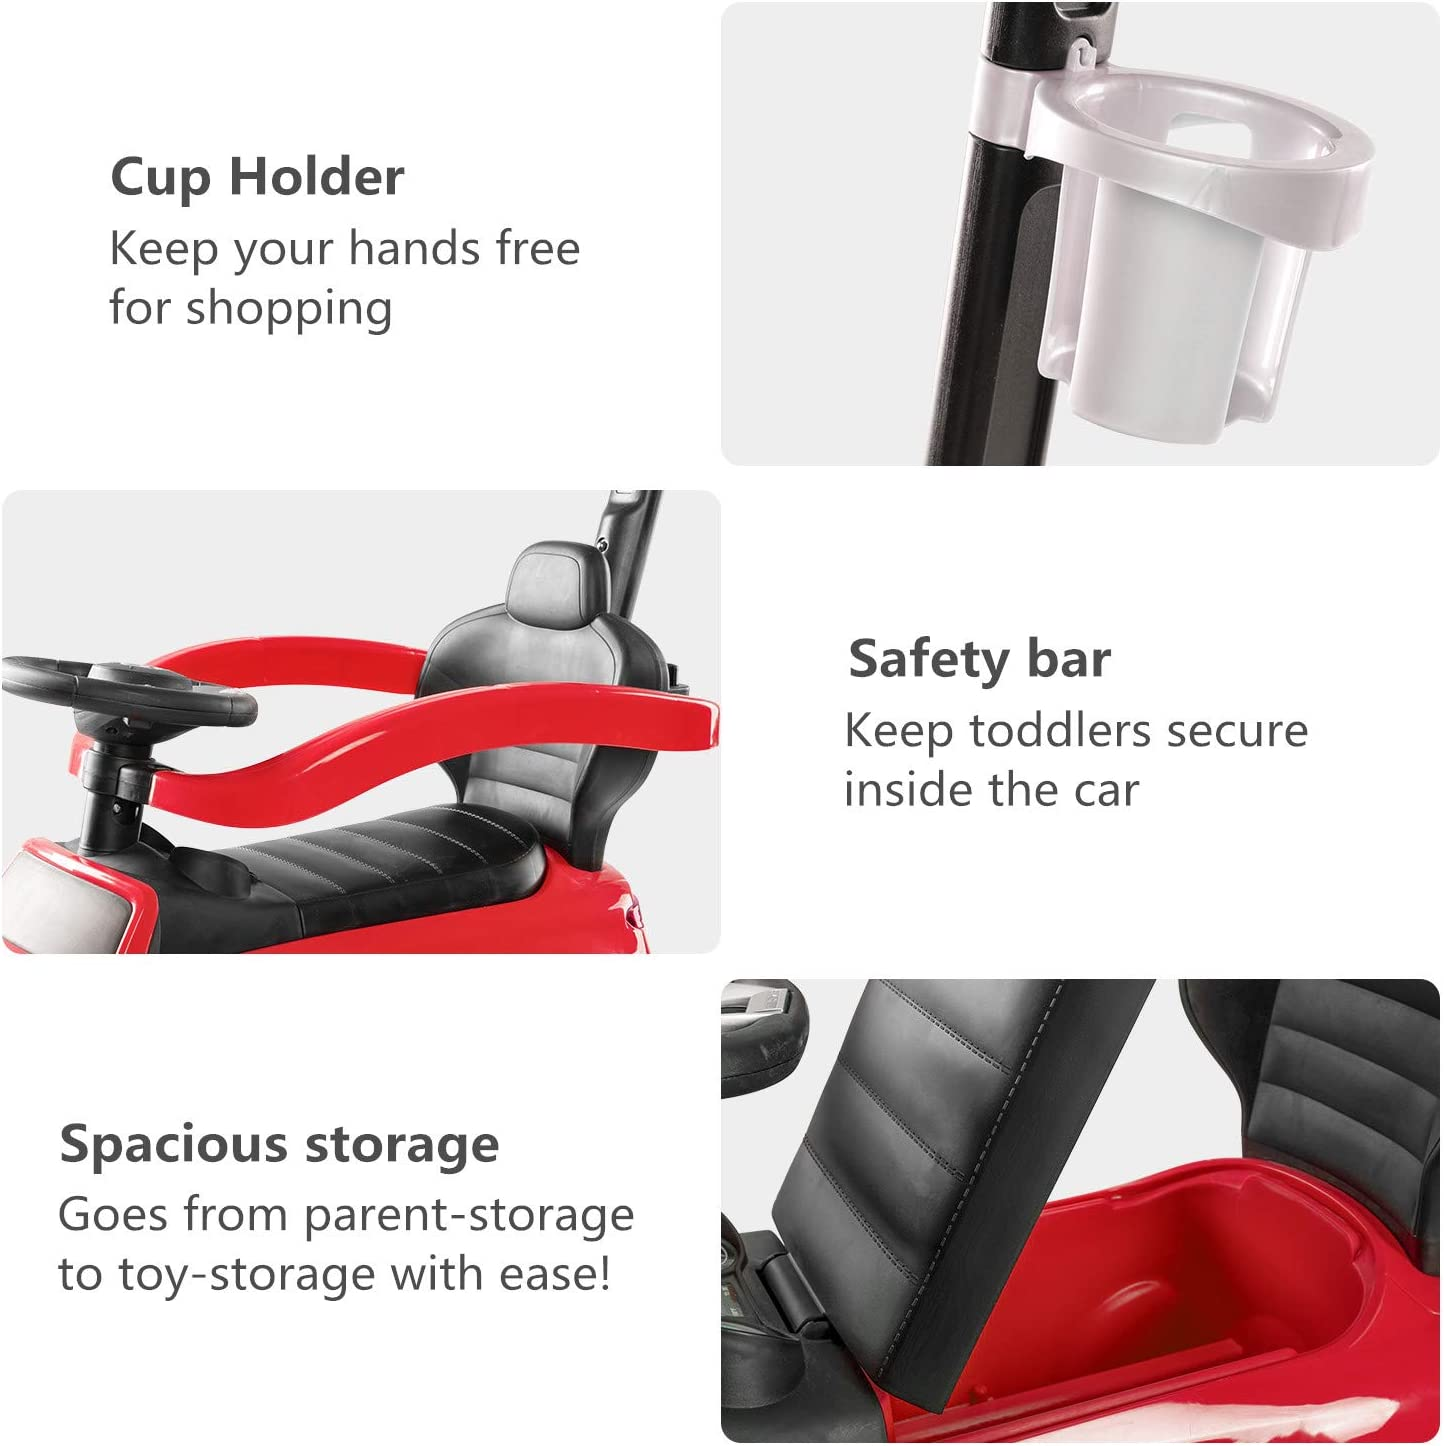 Push Car Stroller for Kids to Ride with Safety Bar Cup Holder BABLE Push Cars for Toddlers Ride on Toys for 1 to 3 Year Old Boys or Girls Blue